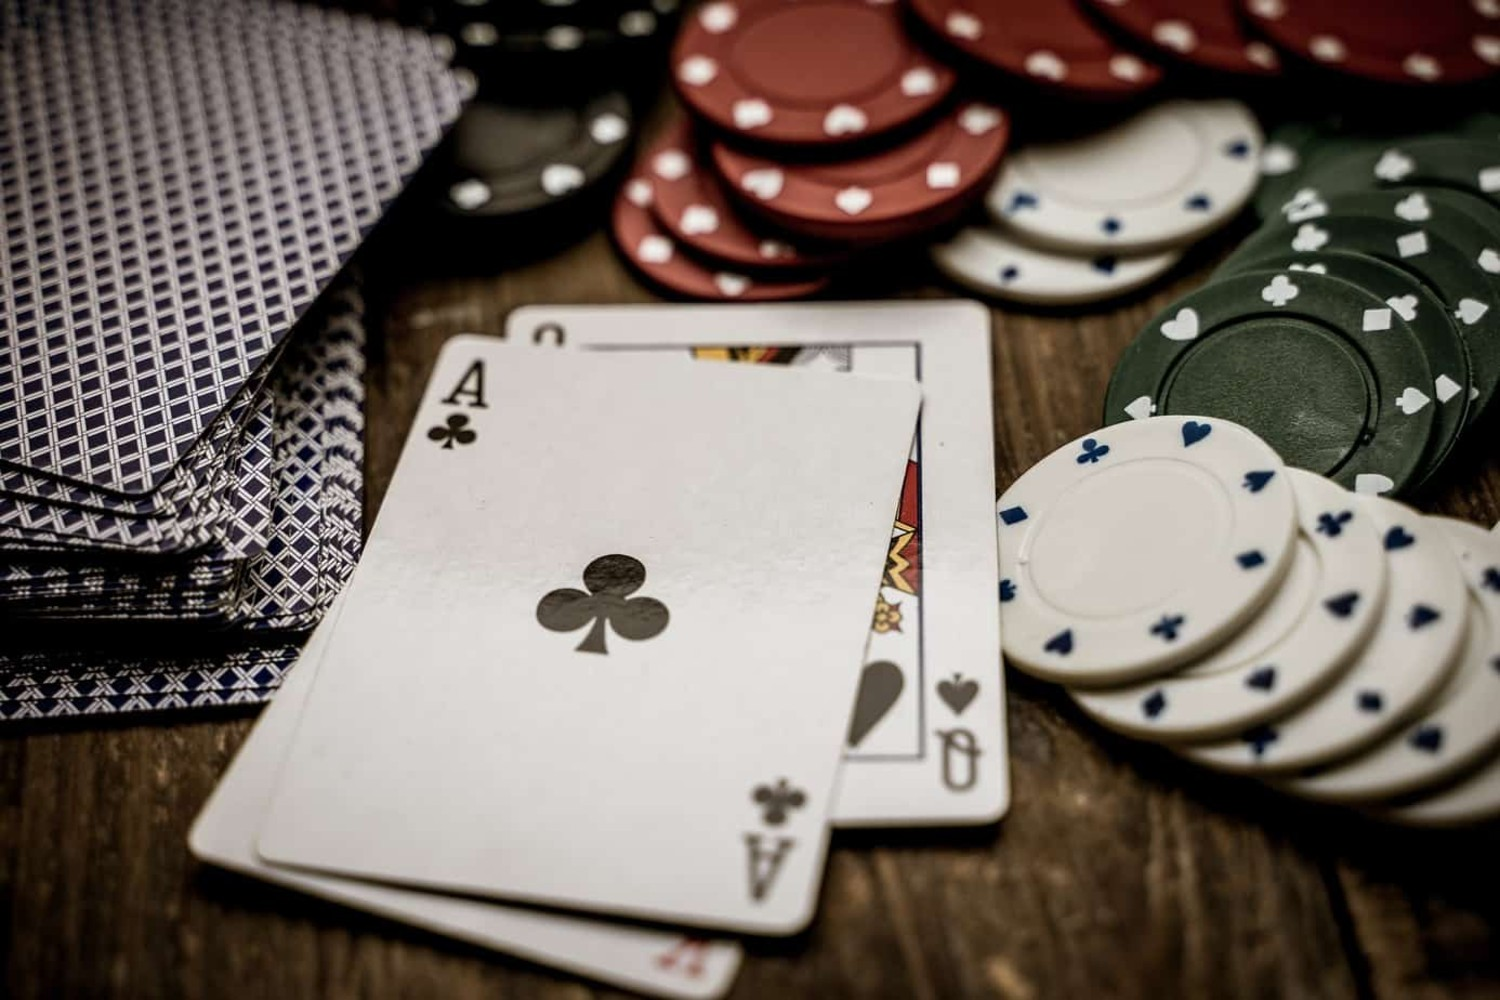 Want to play more online casino games? Here's how casinos make money – Film  Daily